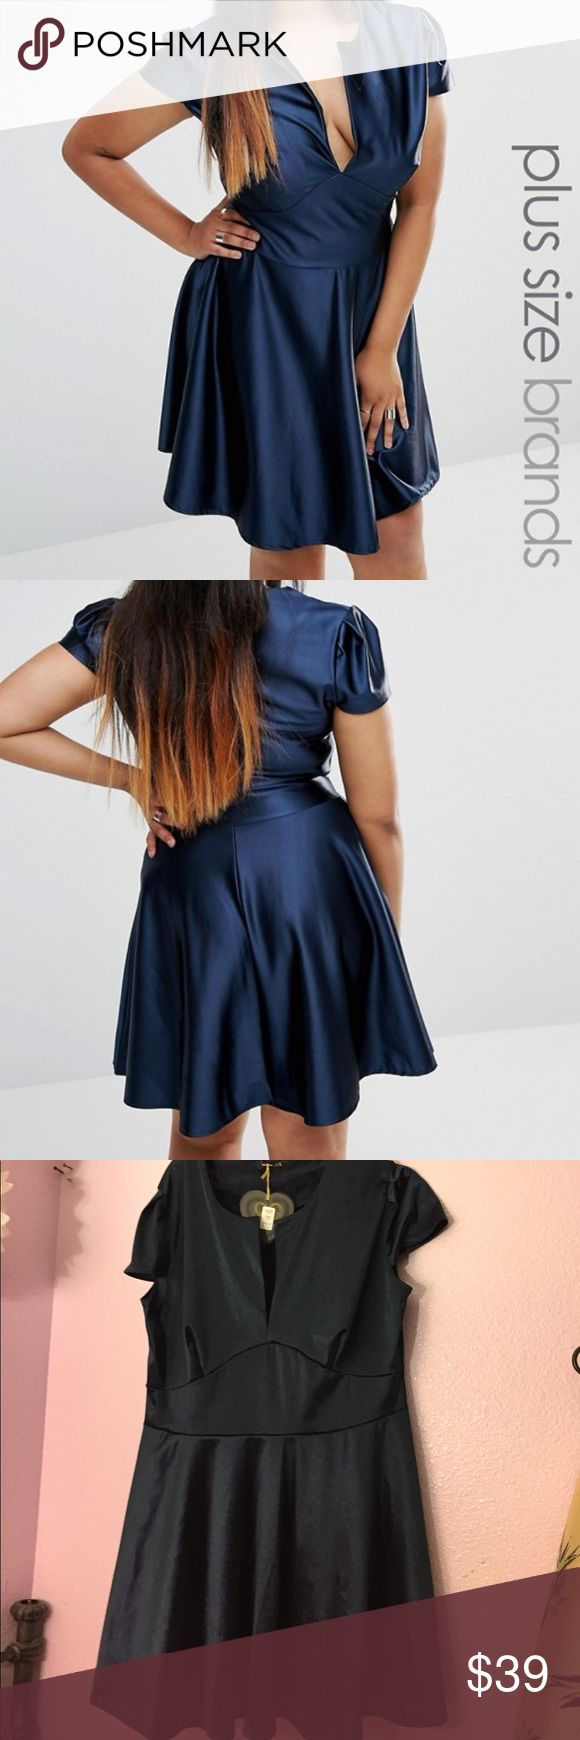 Blue satin skater dress NWT Club L Blue satin skater dress purchased from Asos Curve. Size U.K. 22/US 18, true to size but material is stretchy. Bust is 46-54 inches and 36 inches long. Beautiful dress but I've outgrown it 😩 ASOS Curve Dresses